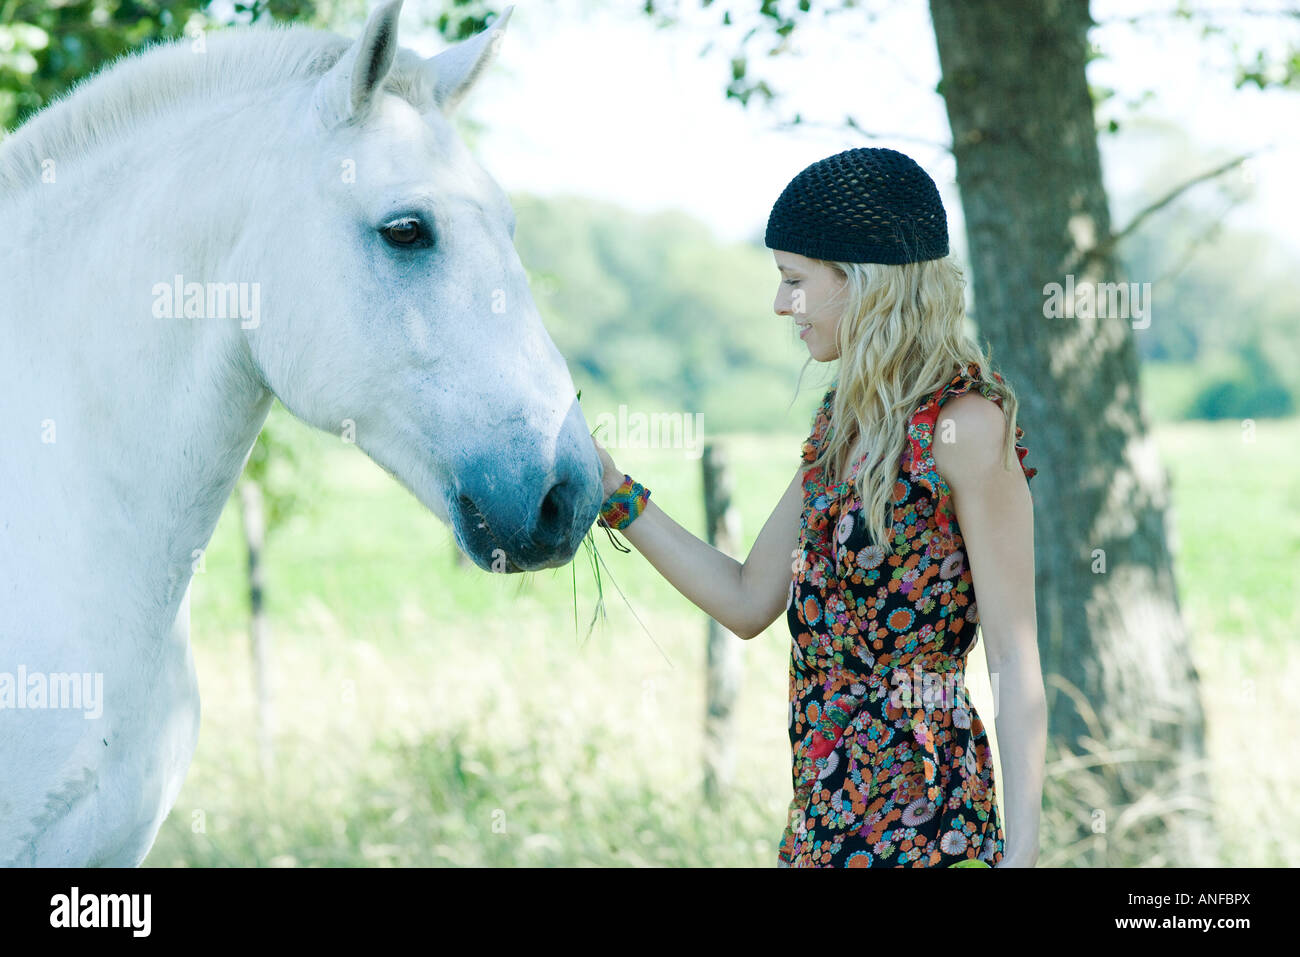 Young woman touching horse, side view - Stock Image